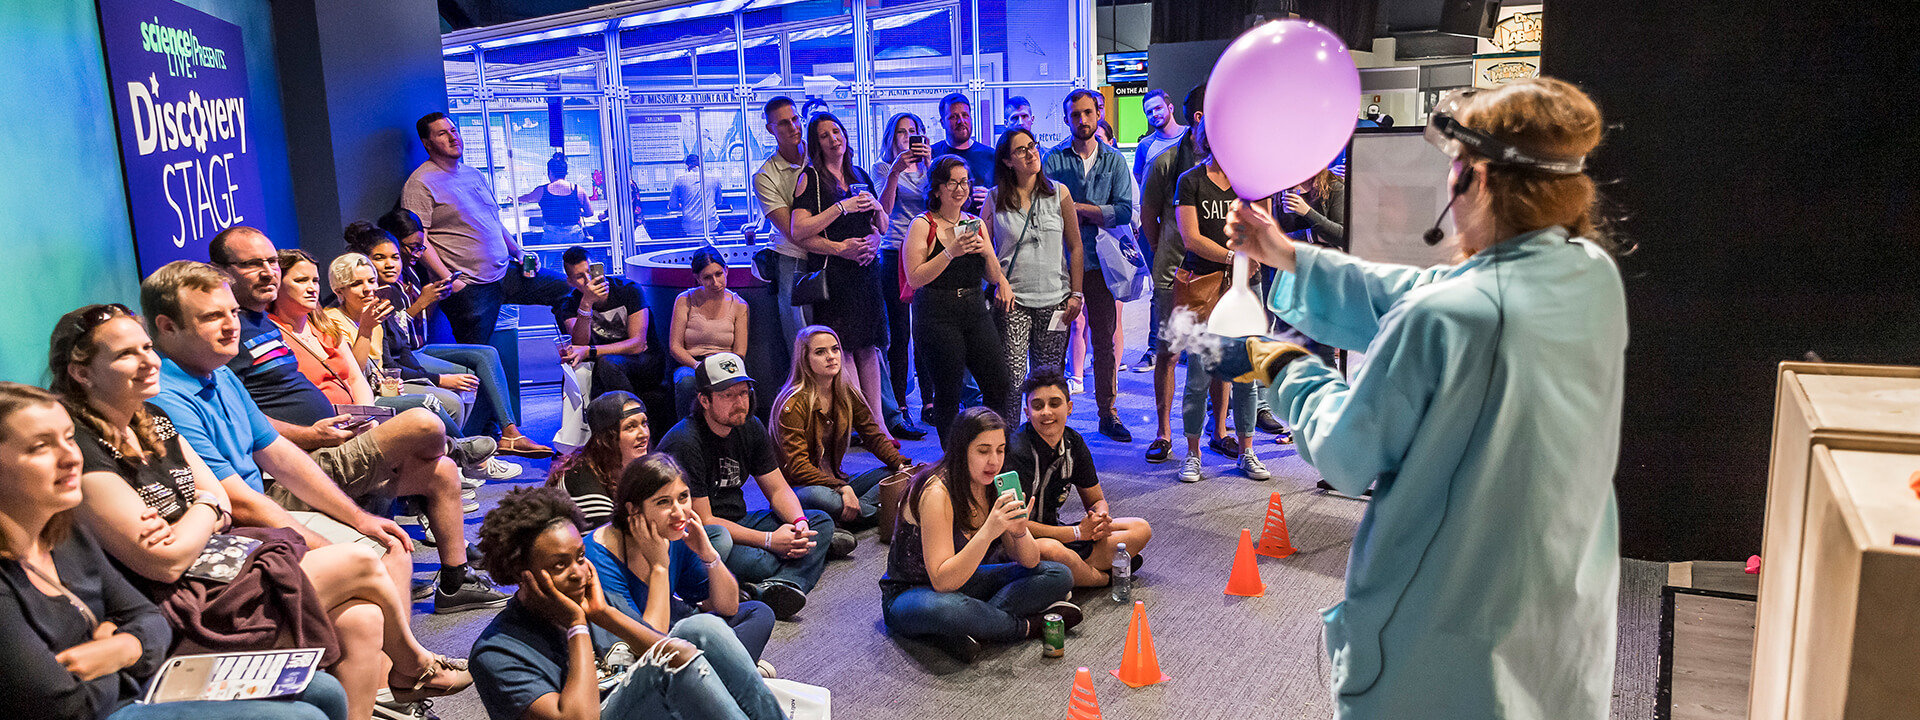 Guests watching a science demonstration